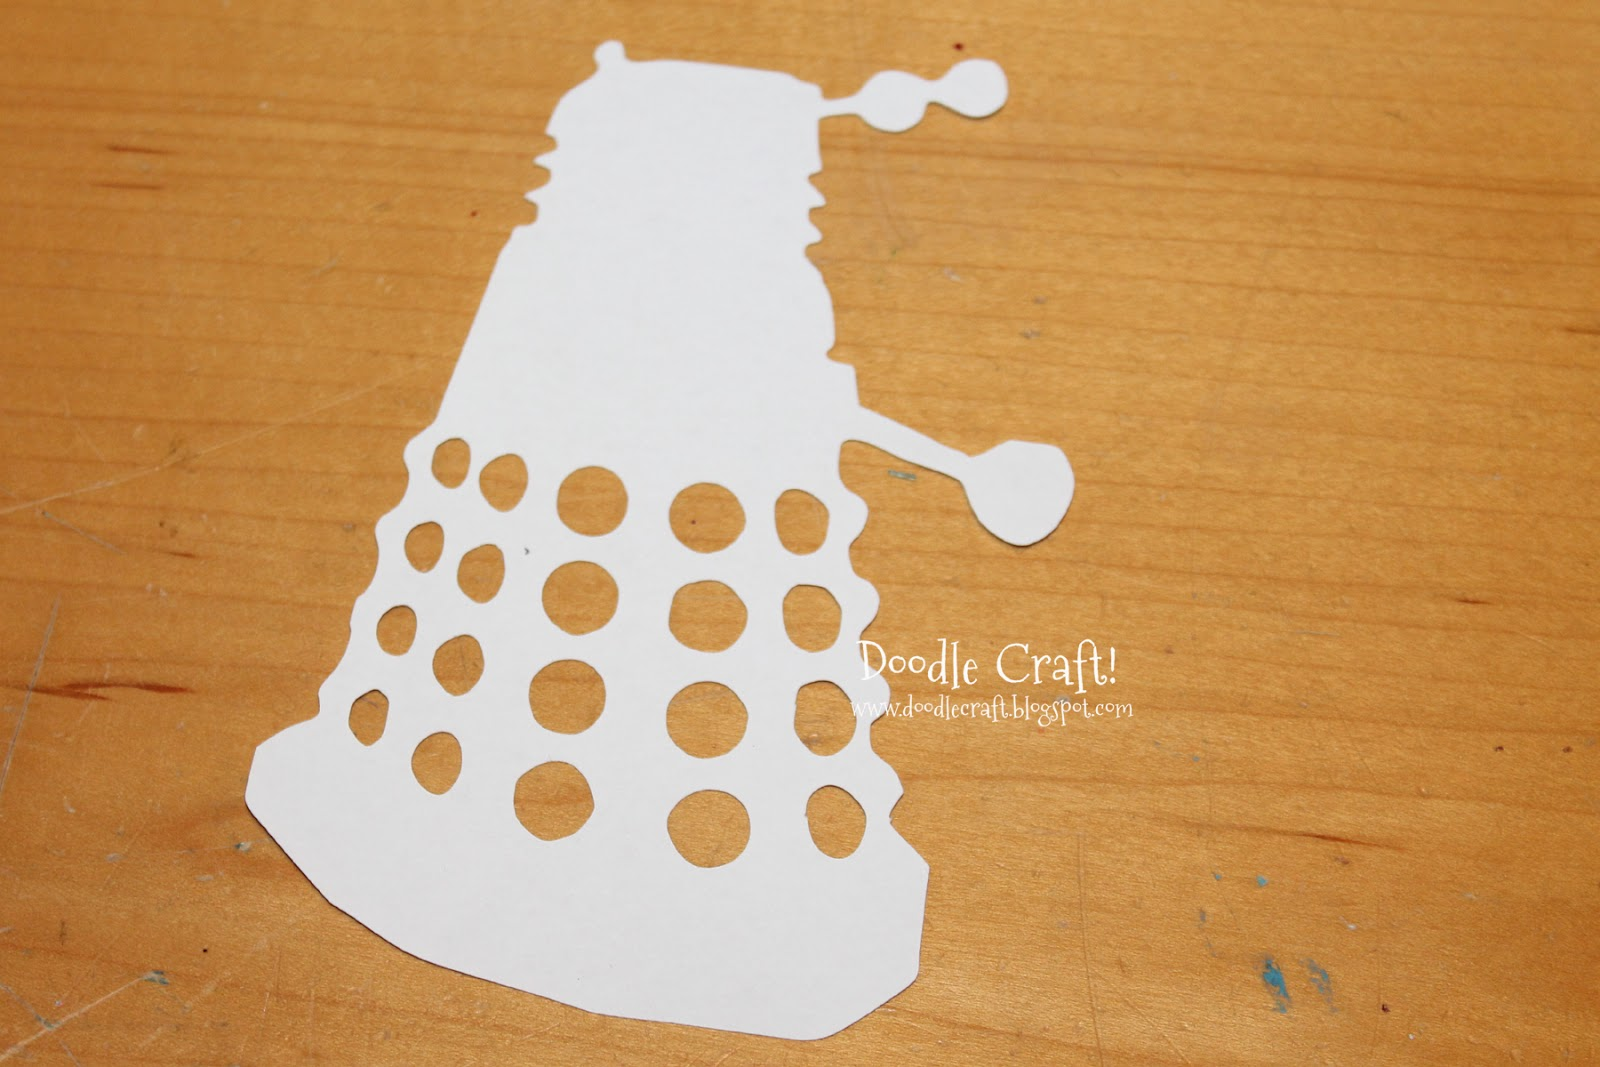 Doodlecraft Dalek Invasion With Rubber Stamps